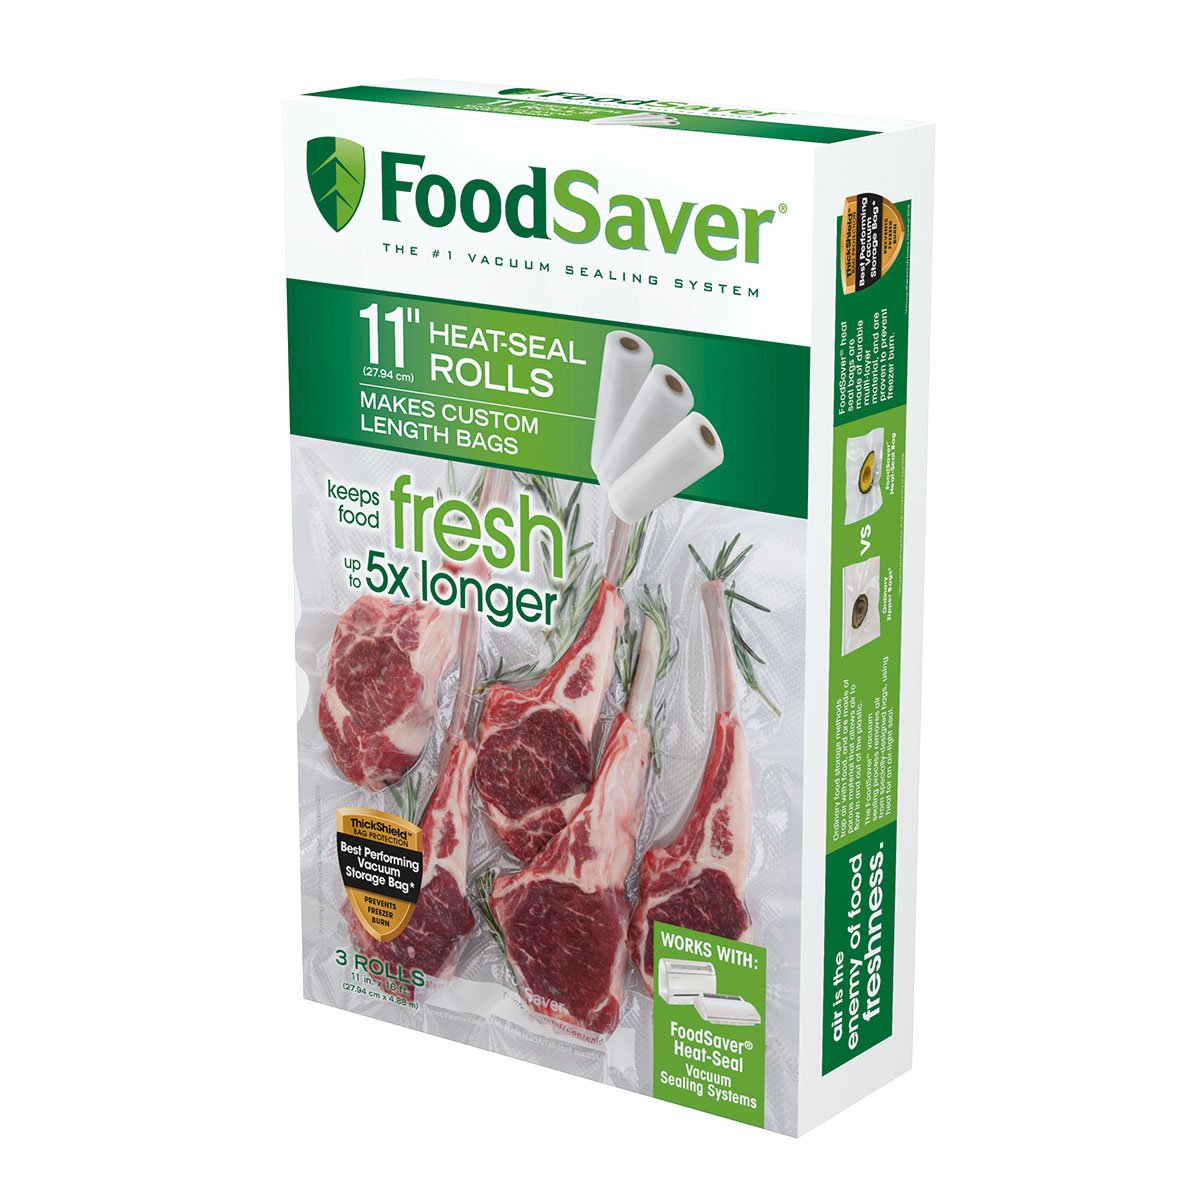 FoodSaver 11'' x 16' Vacuum Seal Roll with BPA-Free Multilayer Construction for Food Preservation, 3-Pack